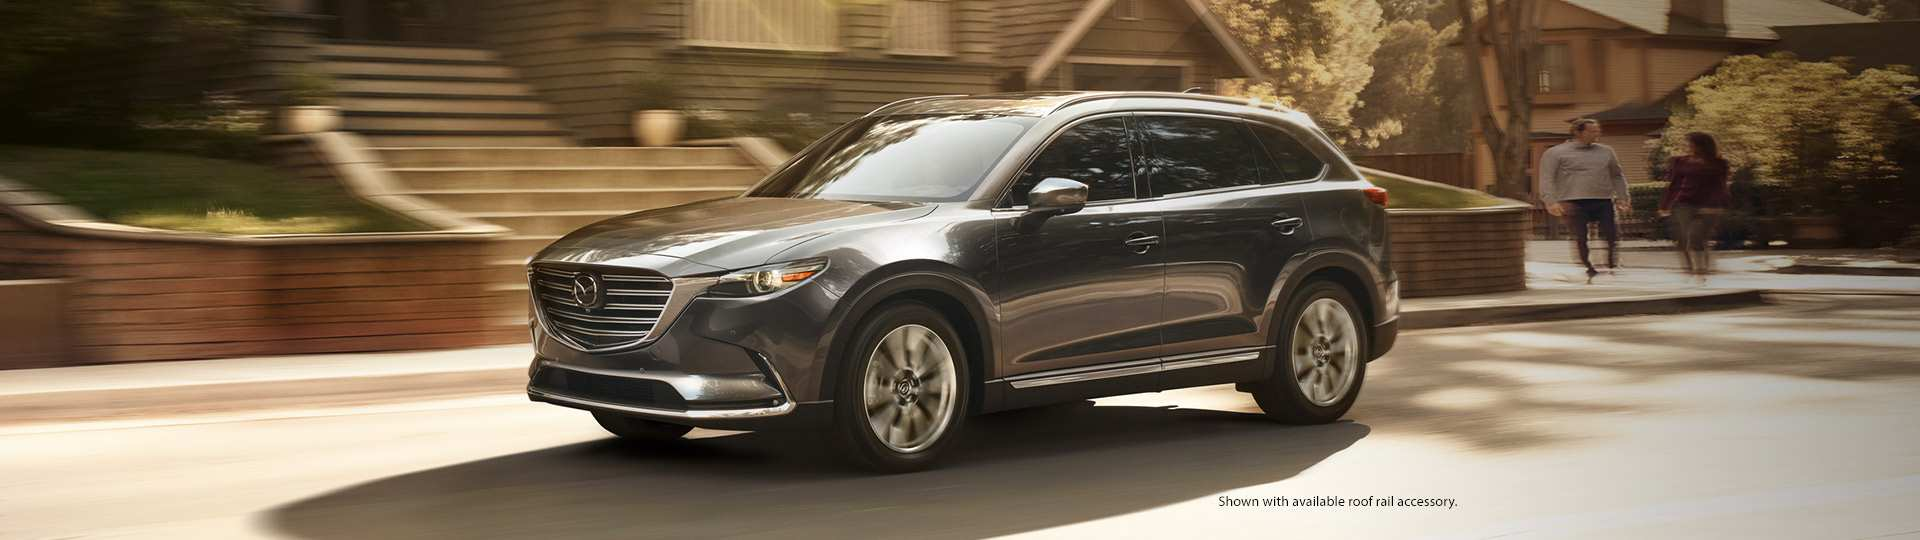 89 All New 2019 Mazda Cx 9S New Model And Performance